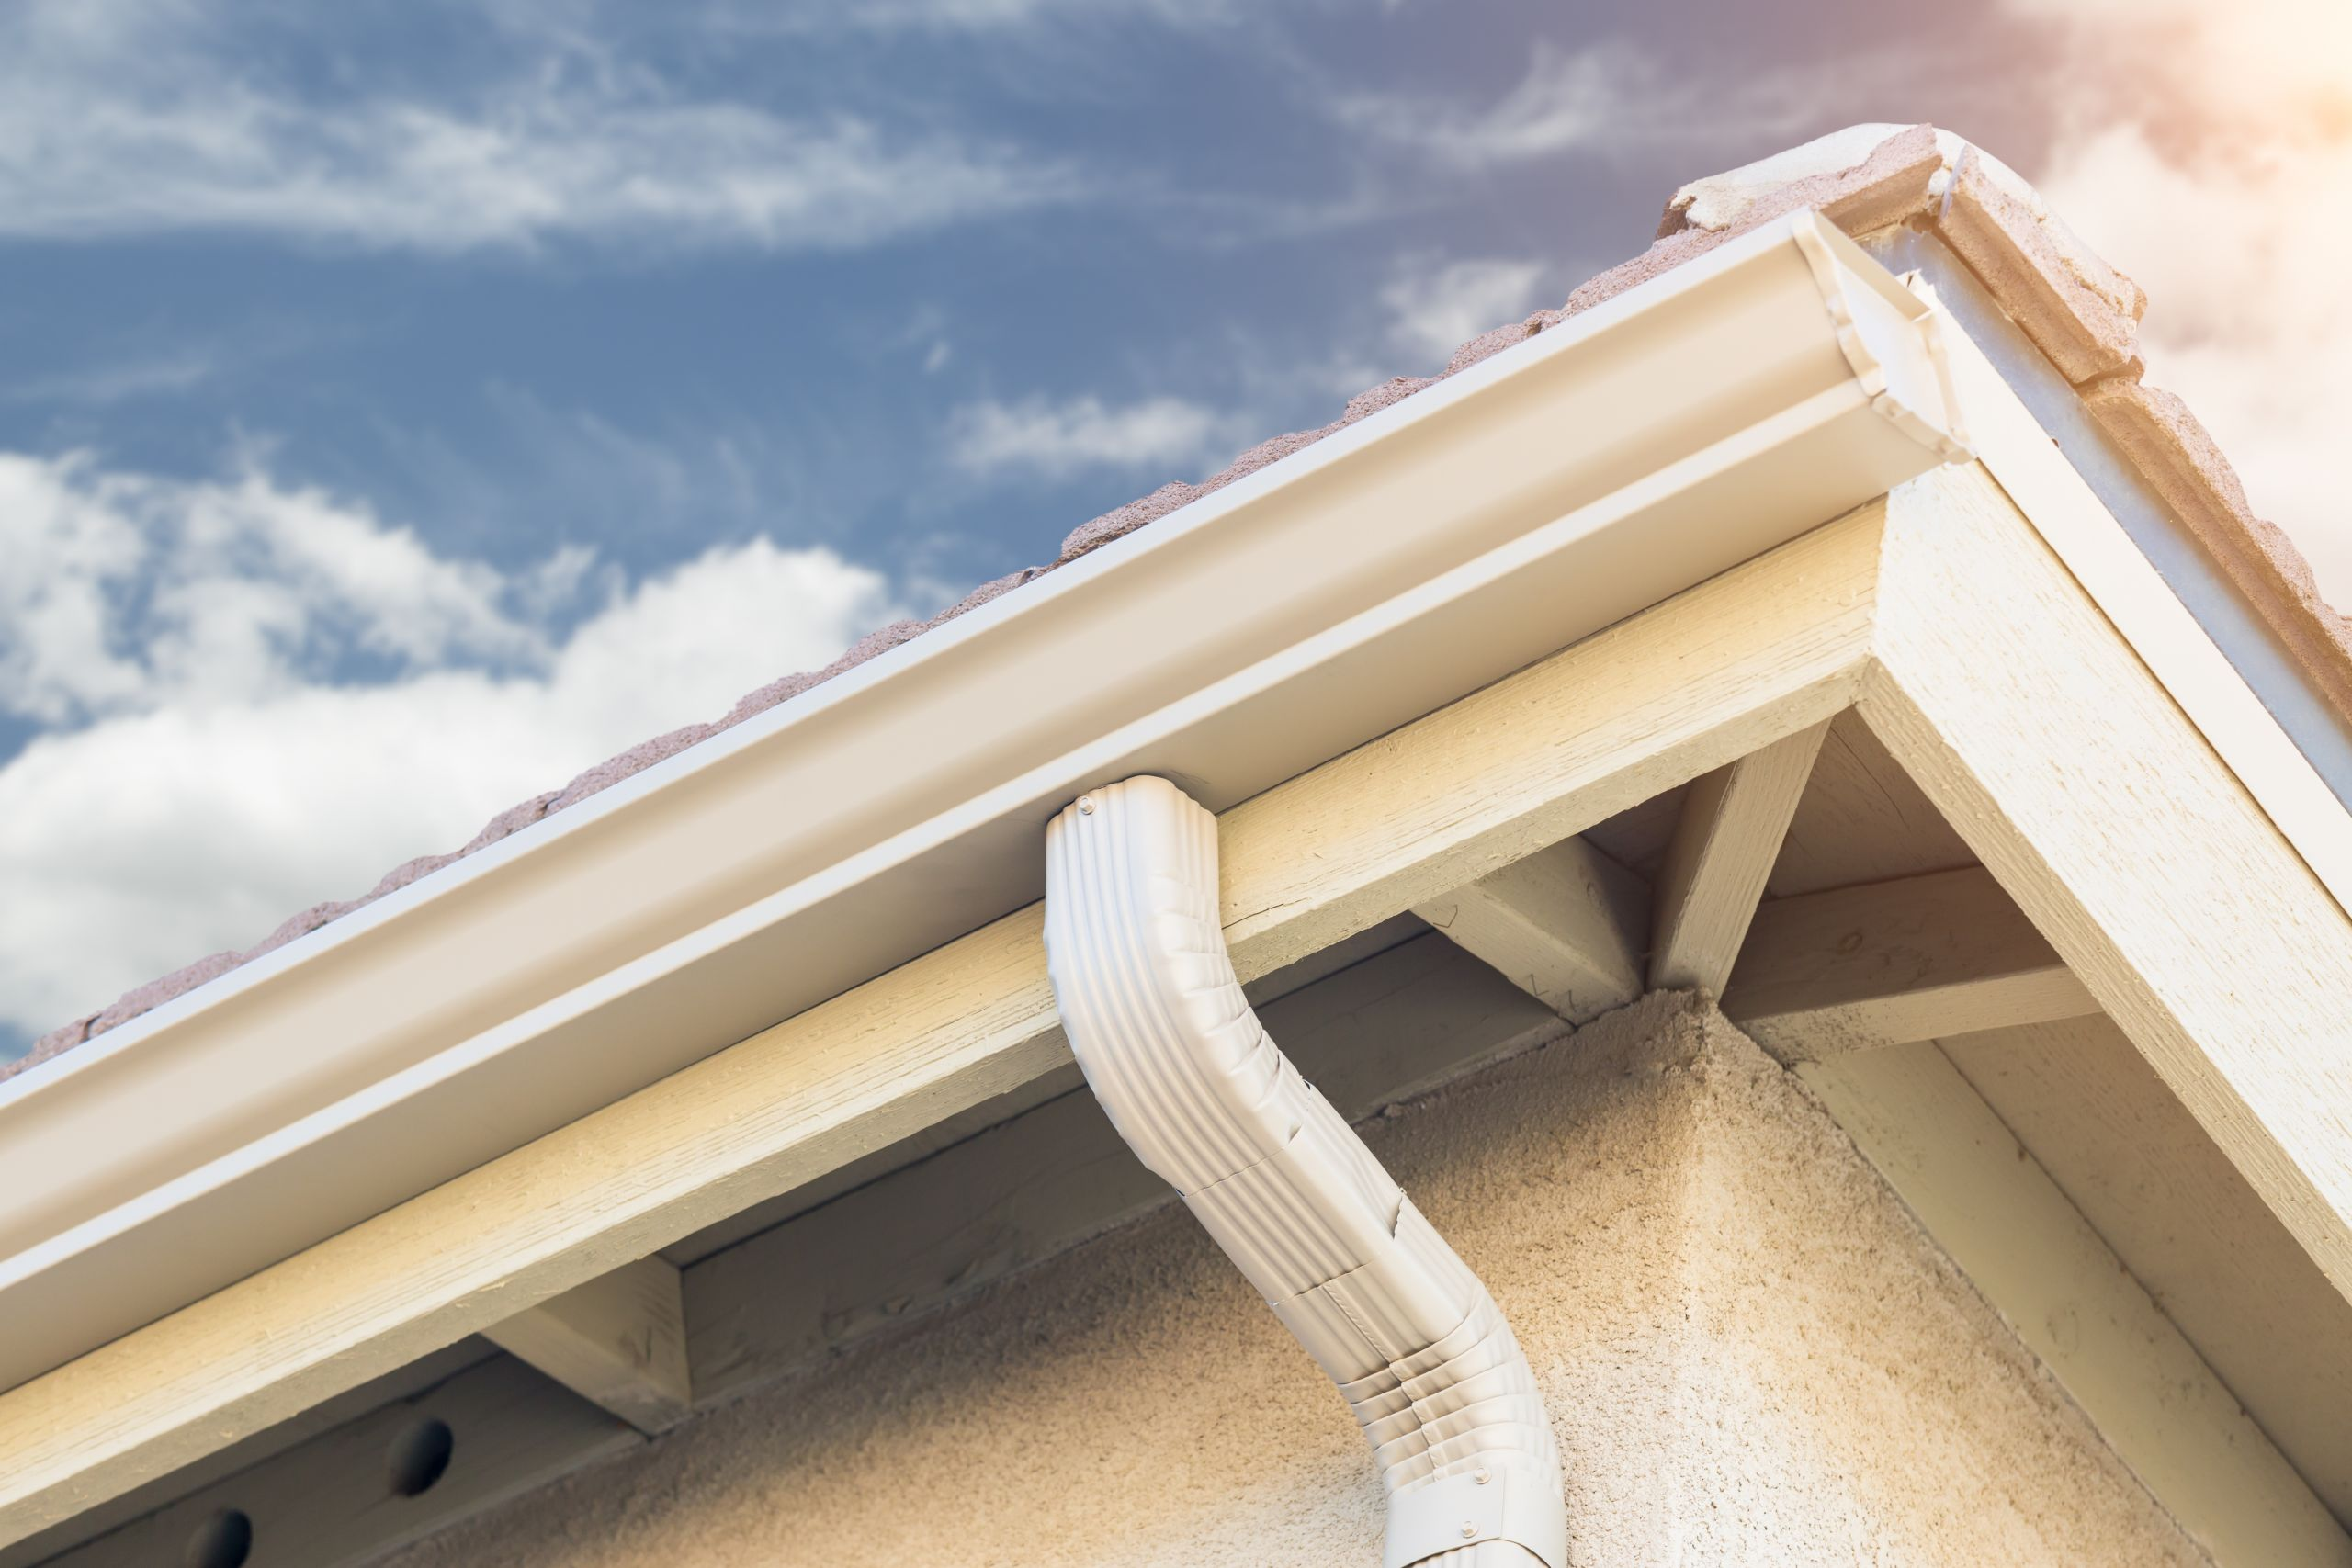 Aluminum Gutter Installation and Replacement for Residential Home